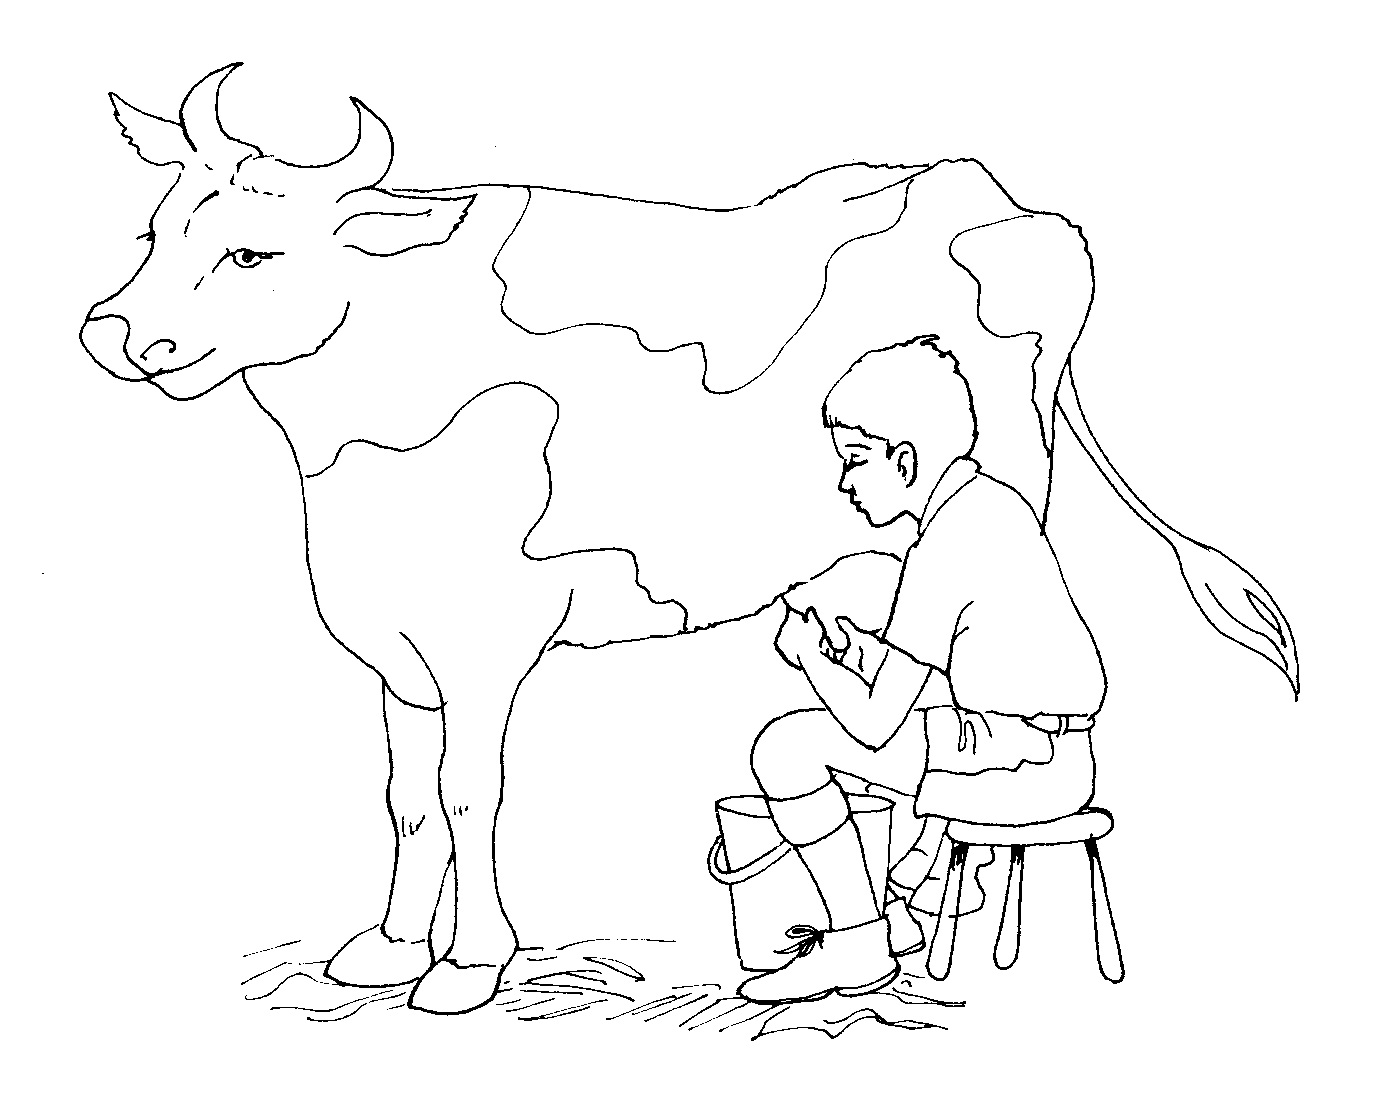 Coloring pages cow - Coloring Pages Cow Photo